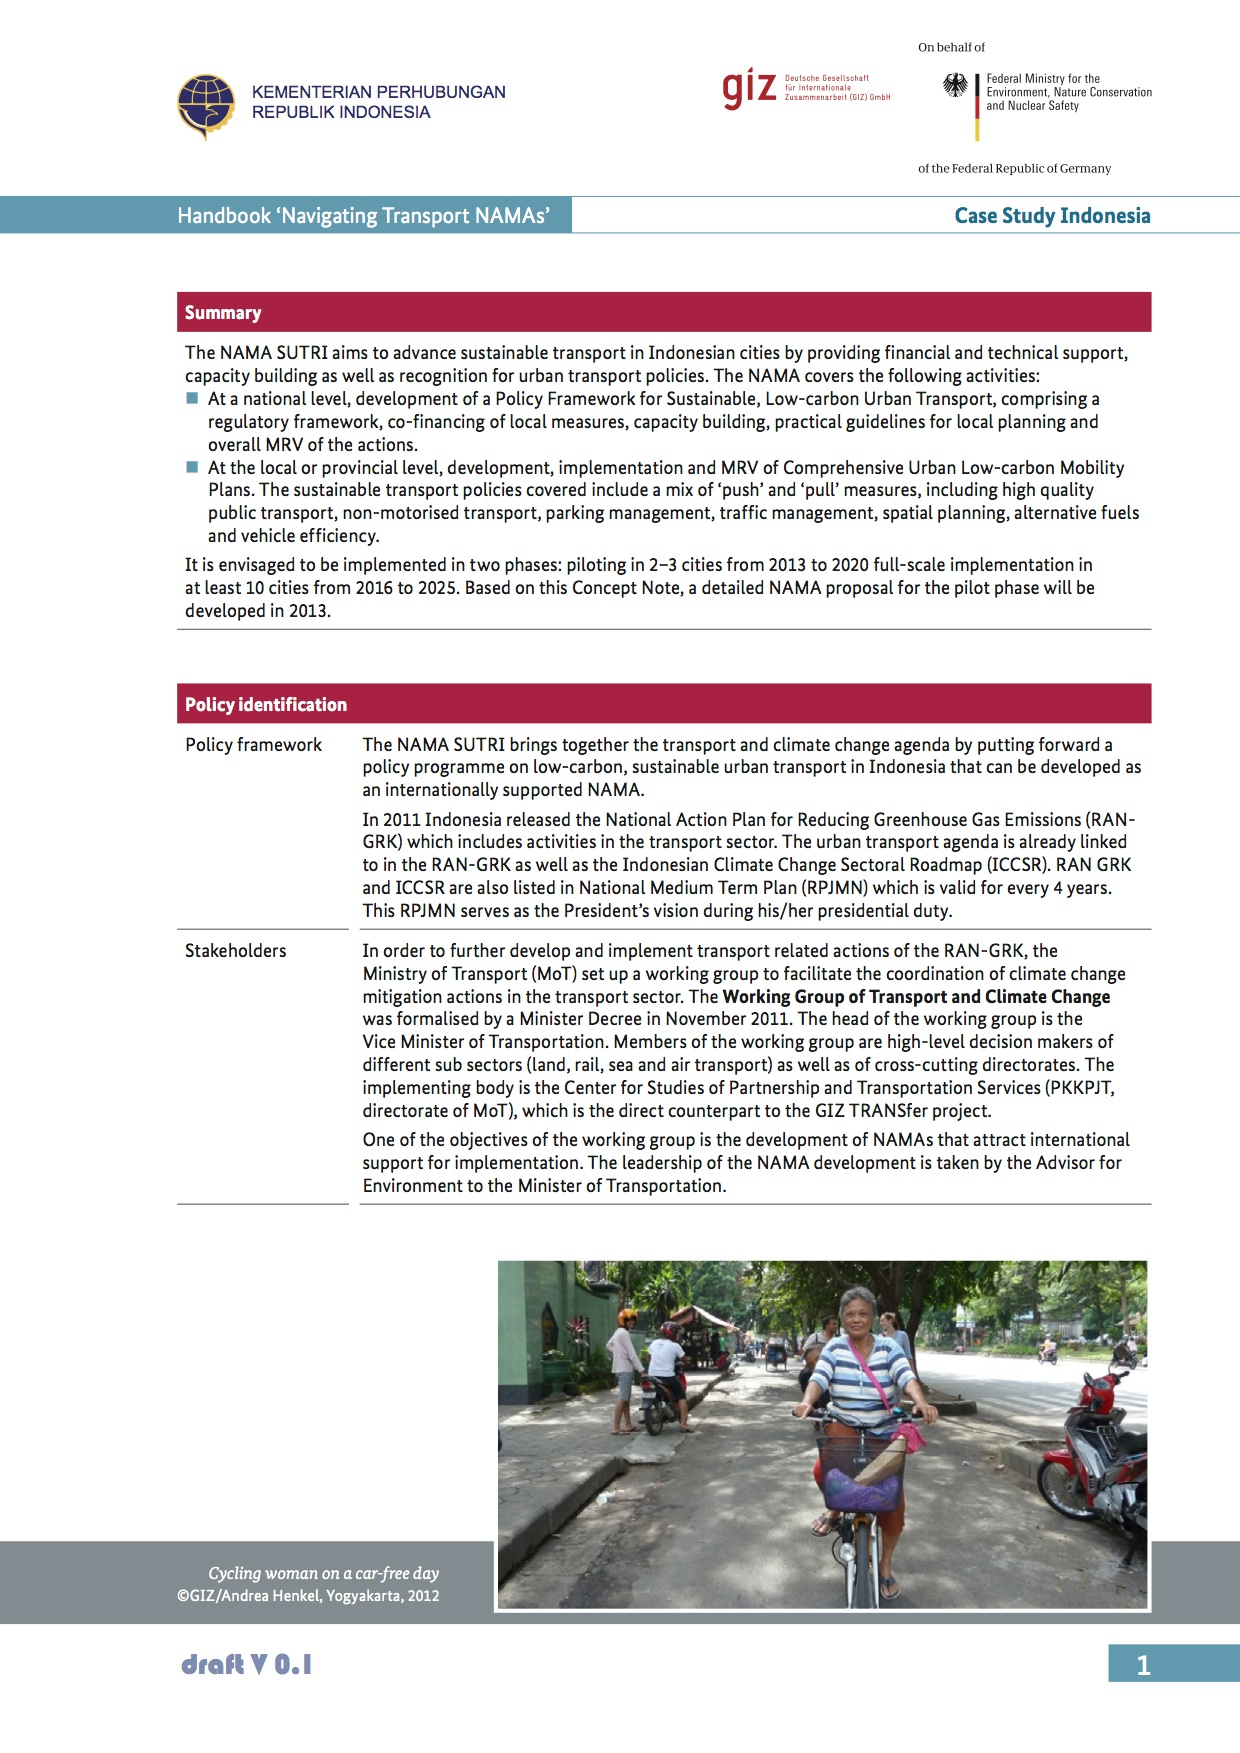 Mobil in Aceh, Indonesia (A) Case Study Analysis & Solution